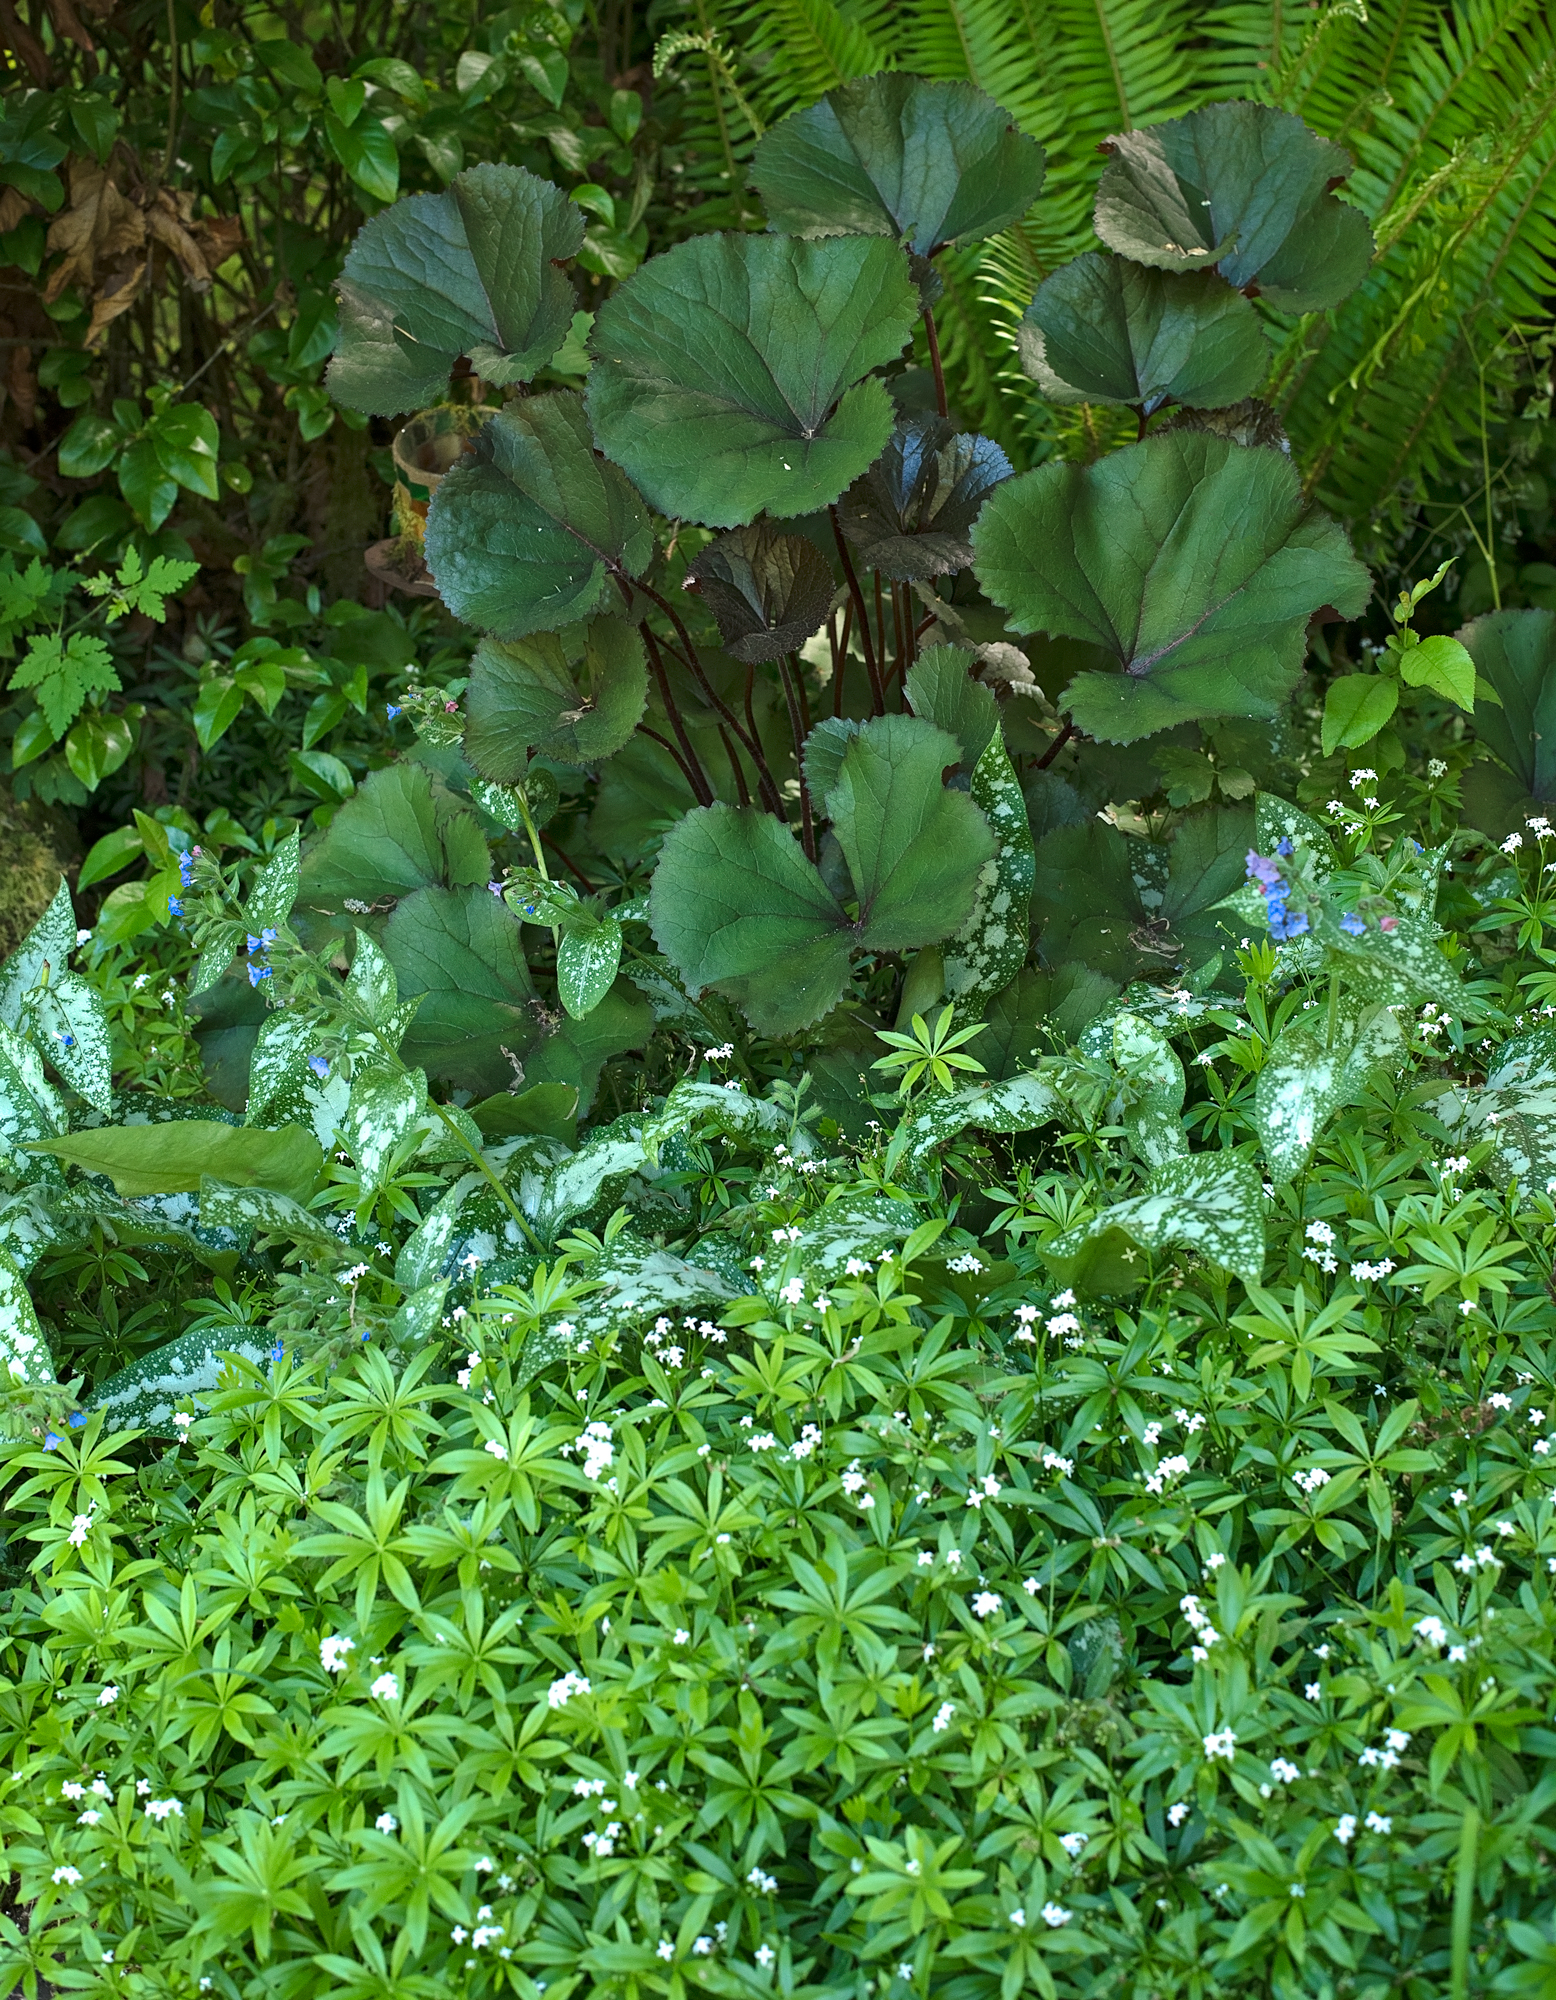 A shady spot with Sweet Woodruff covering the ground under Ligularia and Lungwort